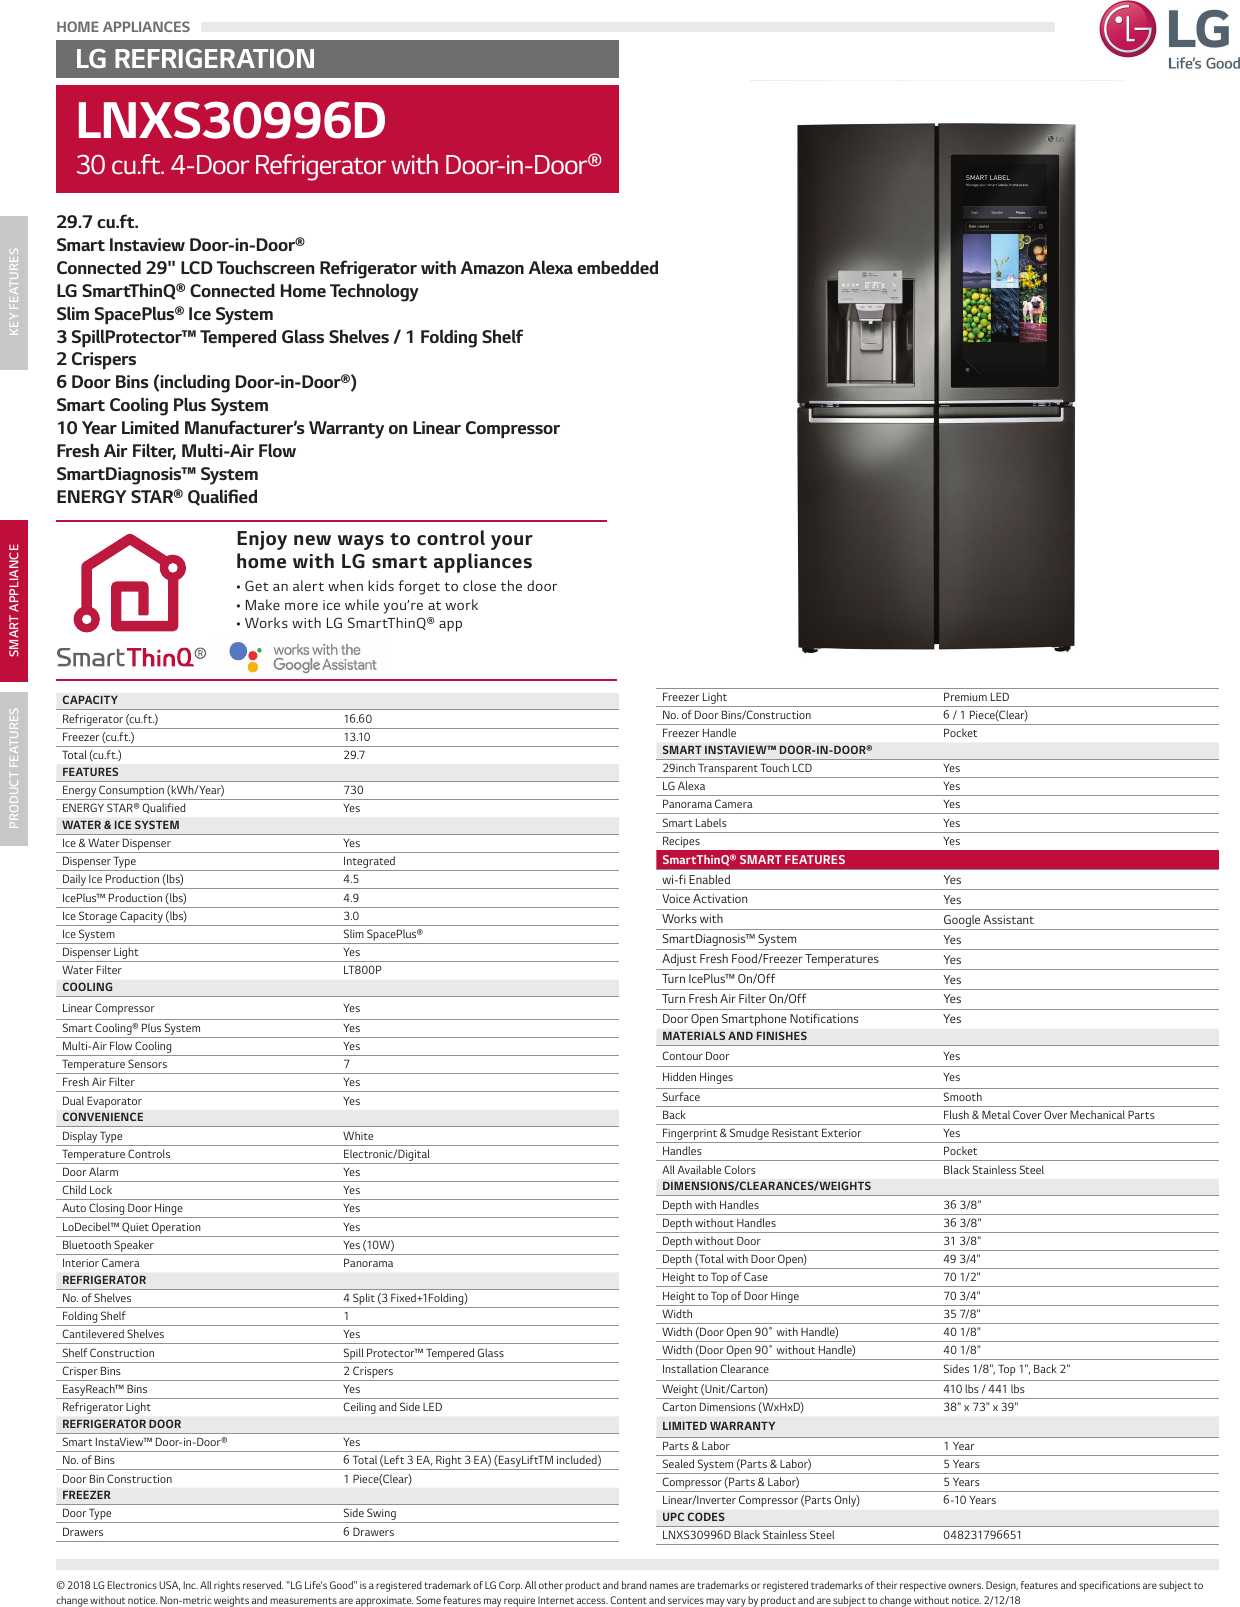 LG LNXS30996D User Manual Specification Spec Sheet